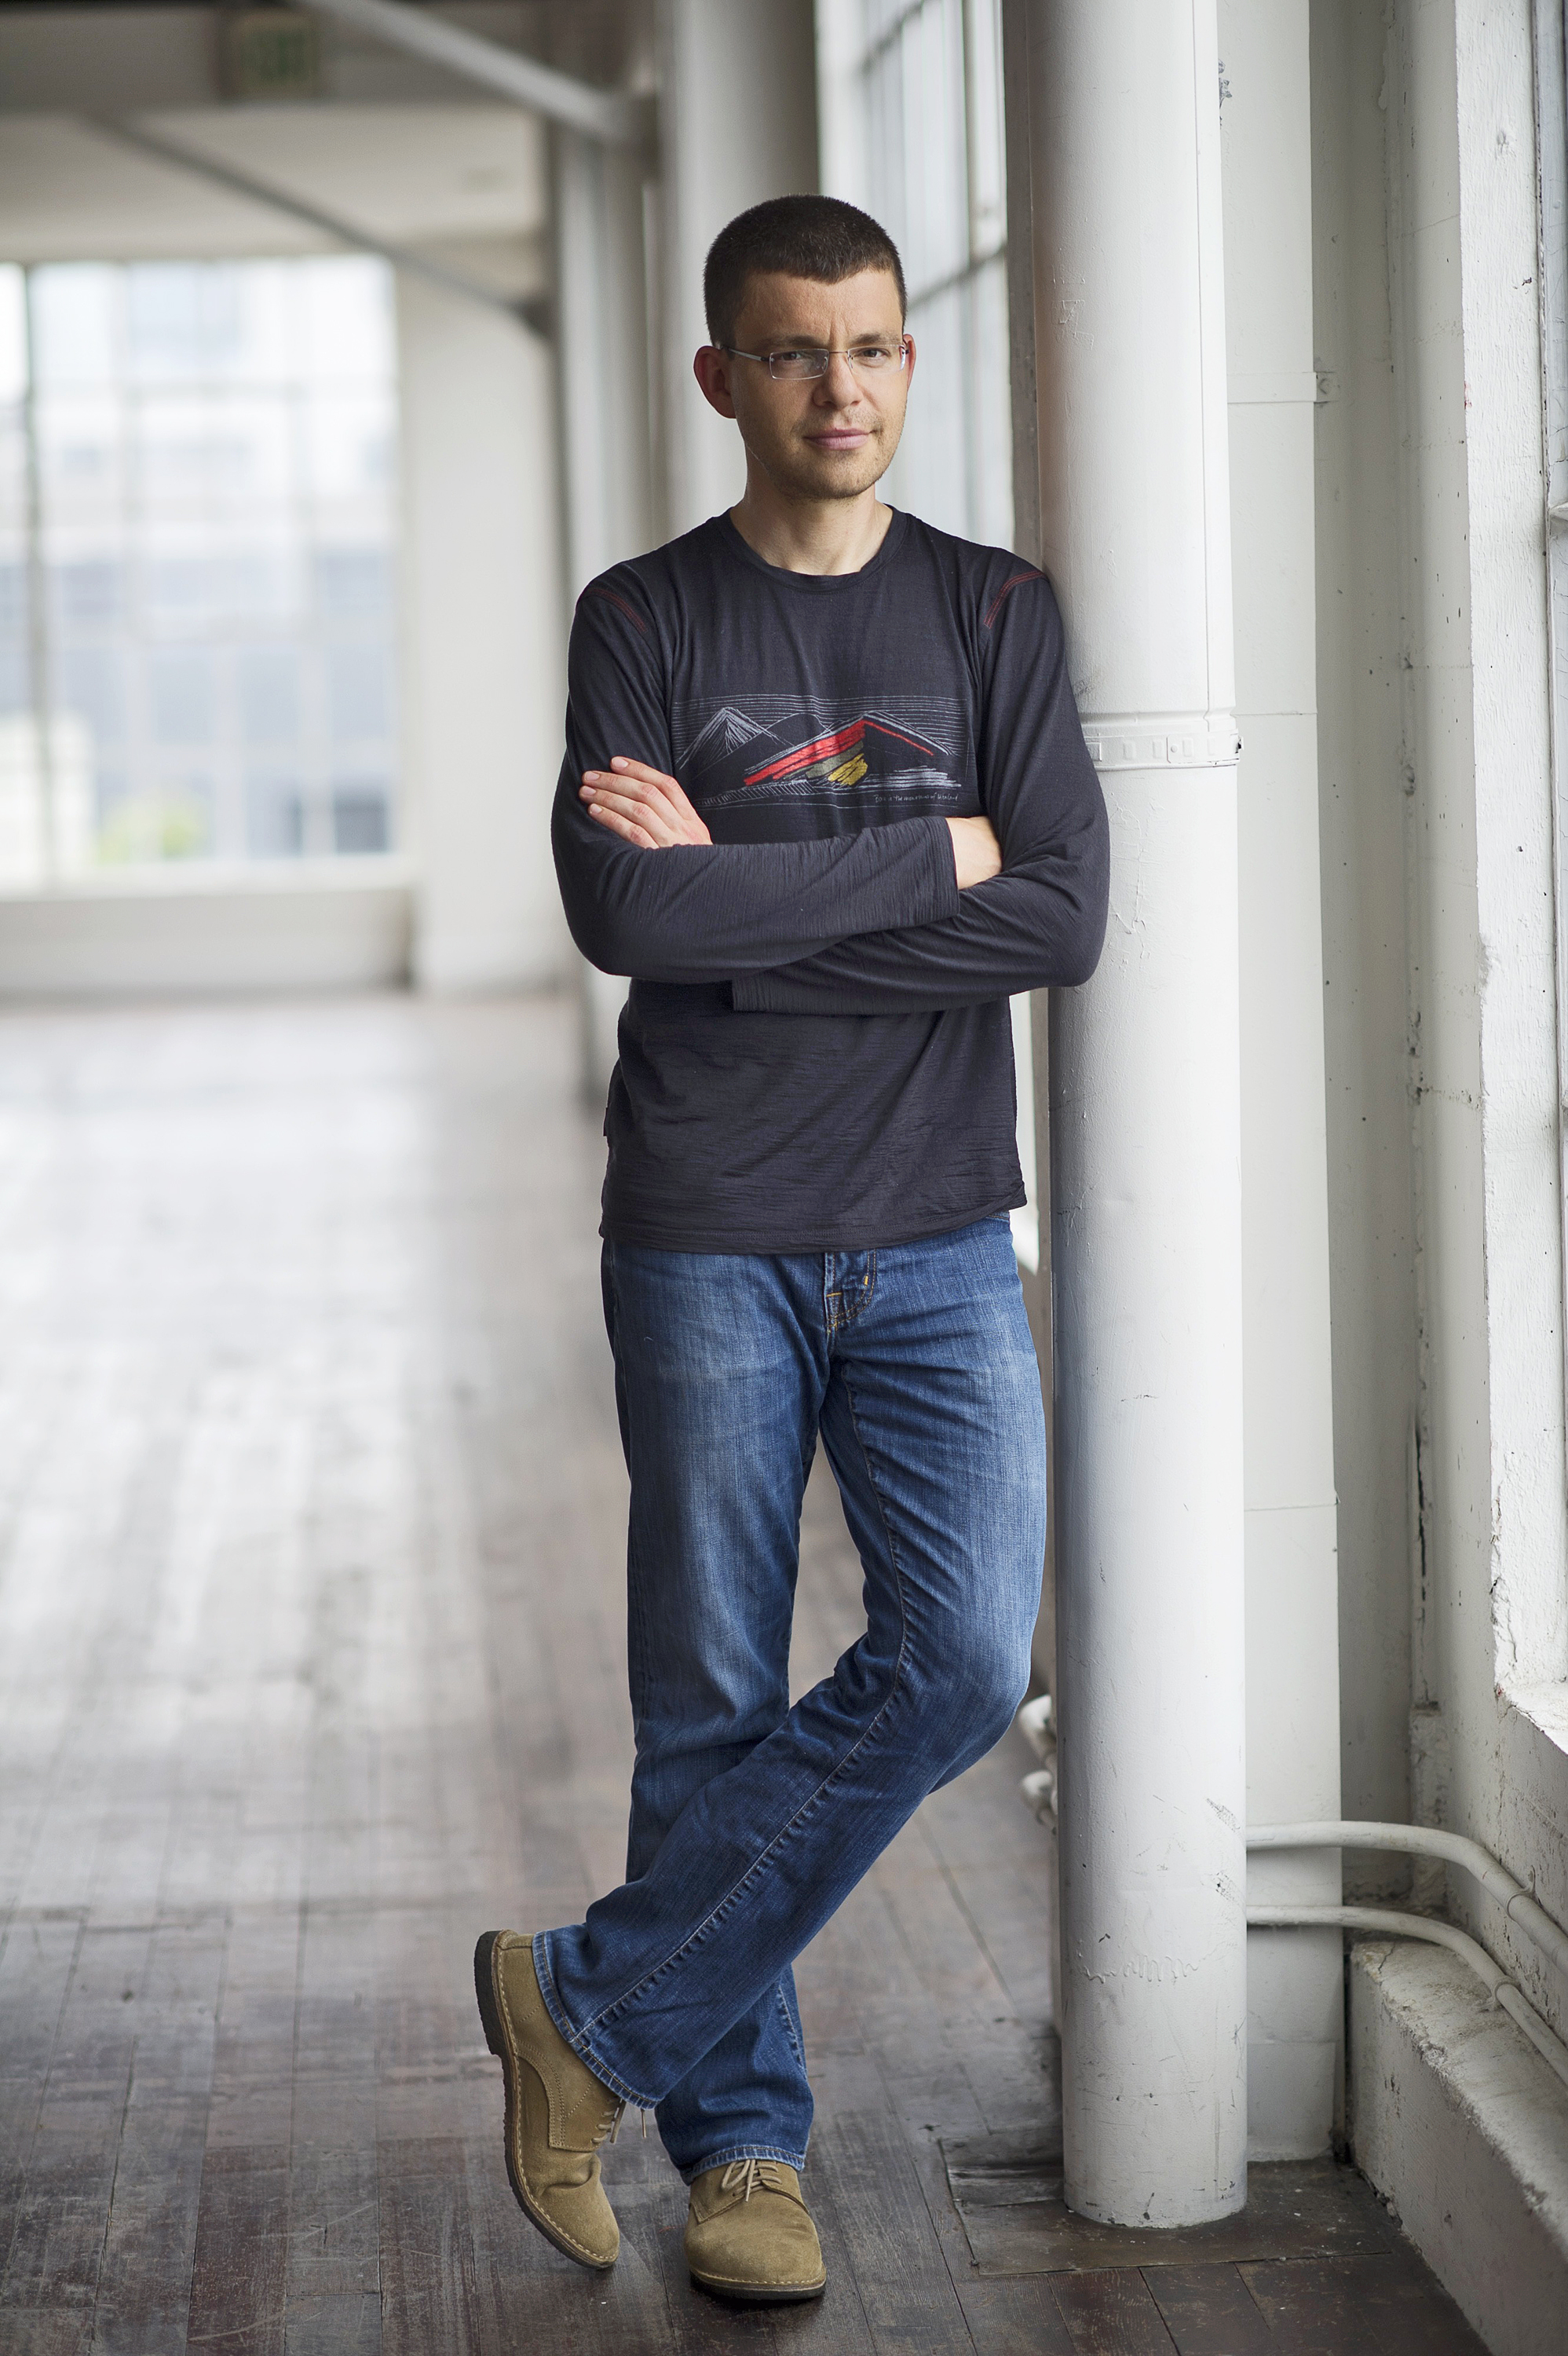 Mad Max Levchin has started three technology companies and runs a venture-capital firm